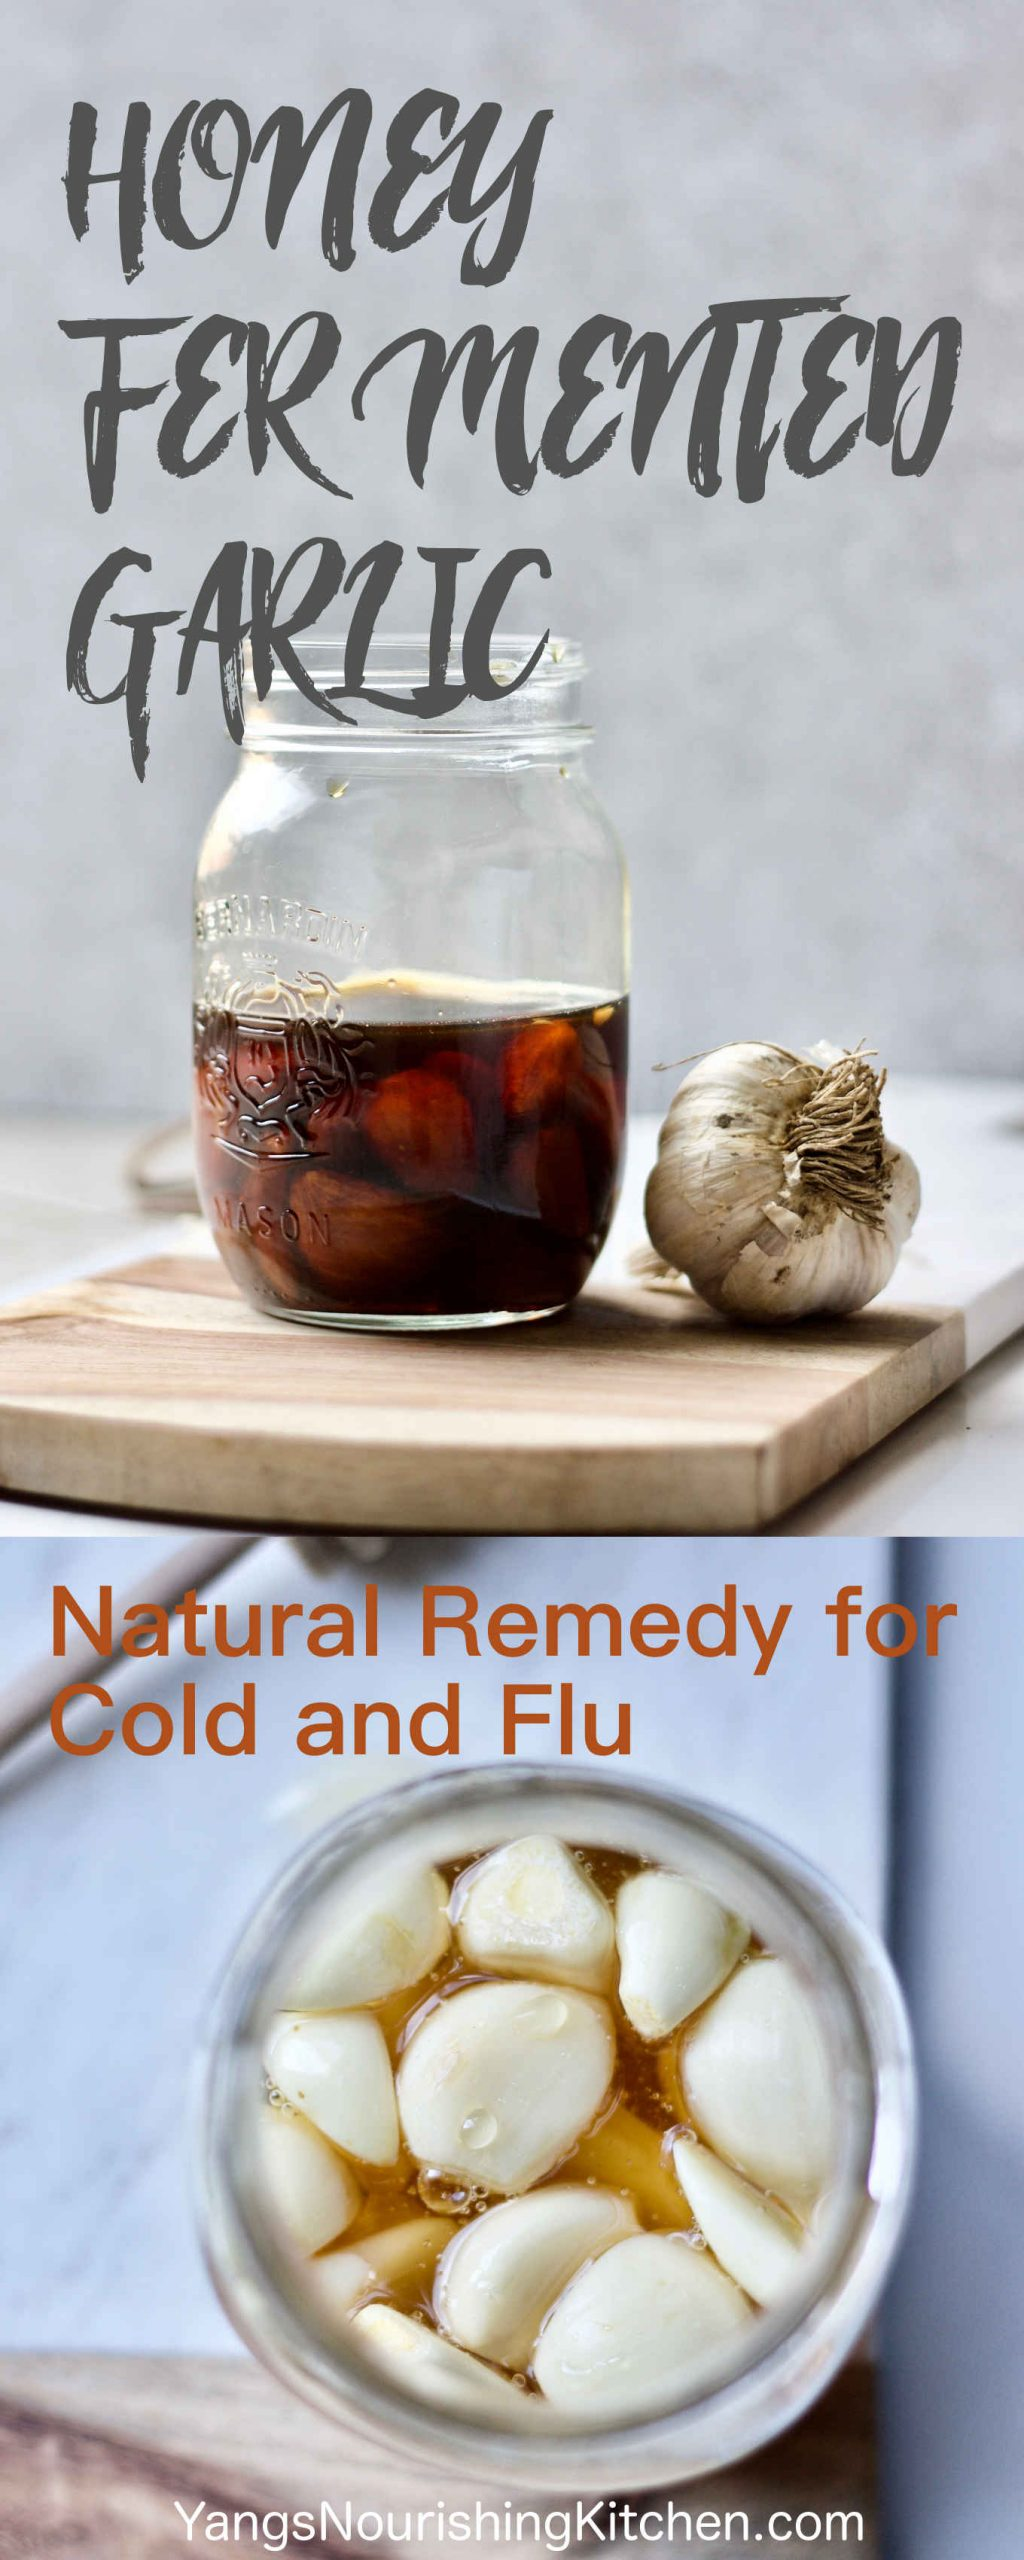 Honey Fermented Garlic: A Natural Remedy for Cold and Flu